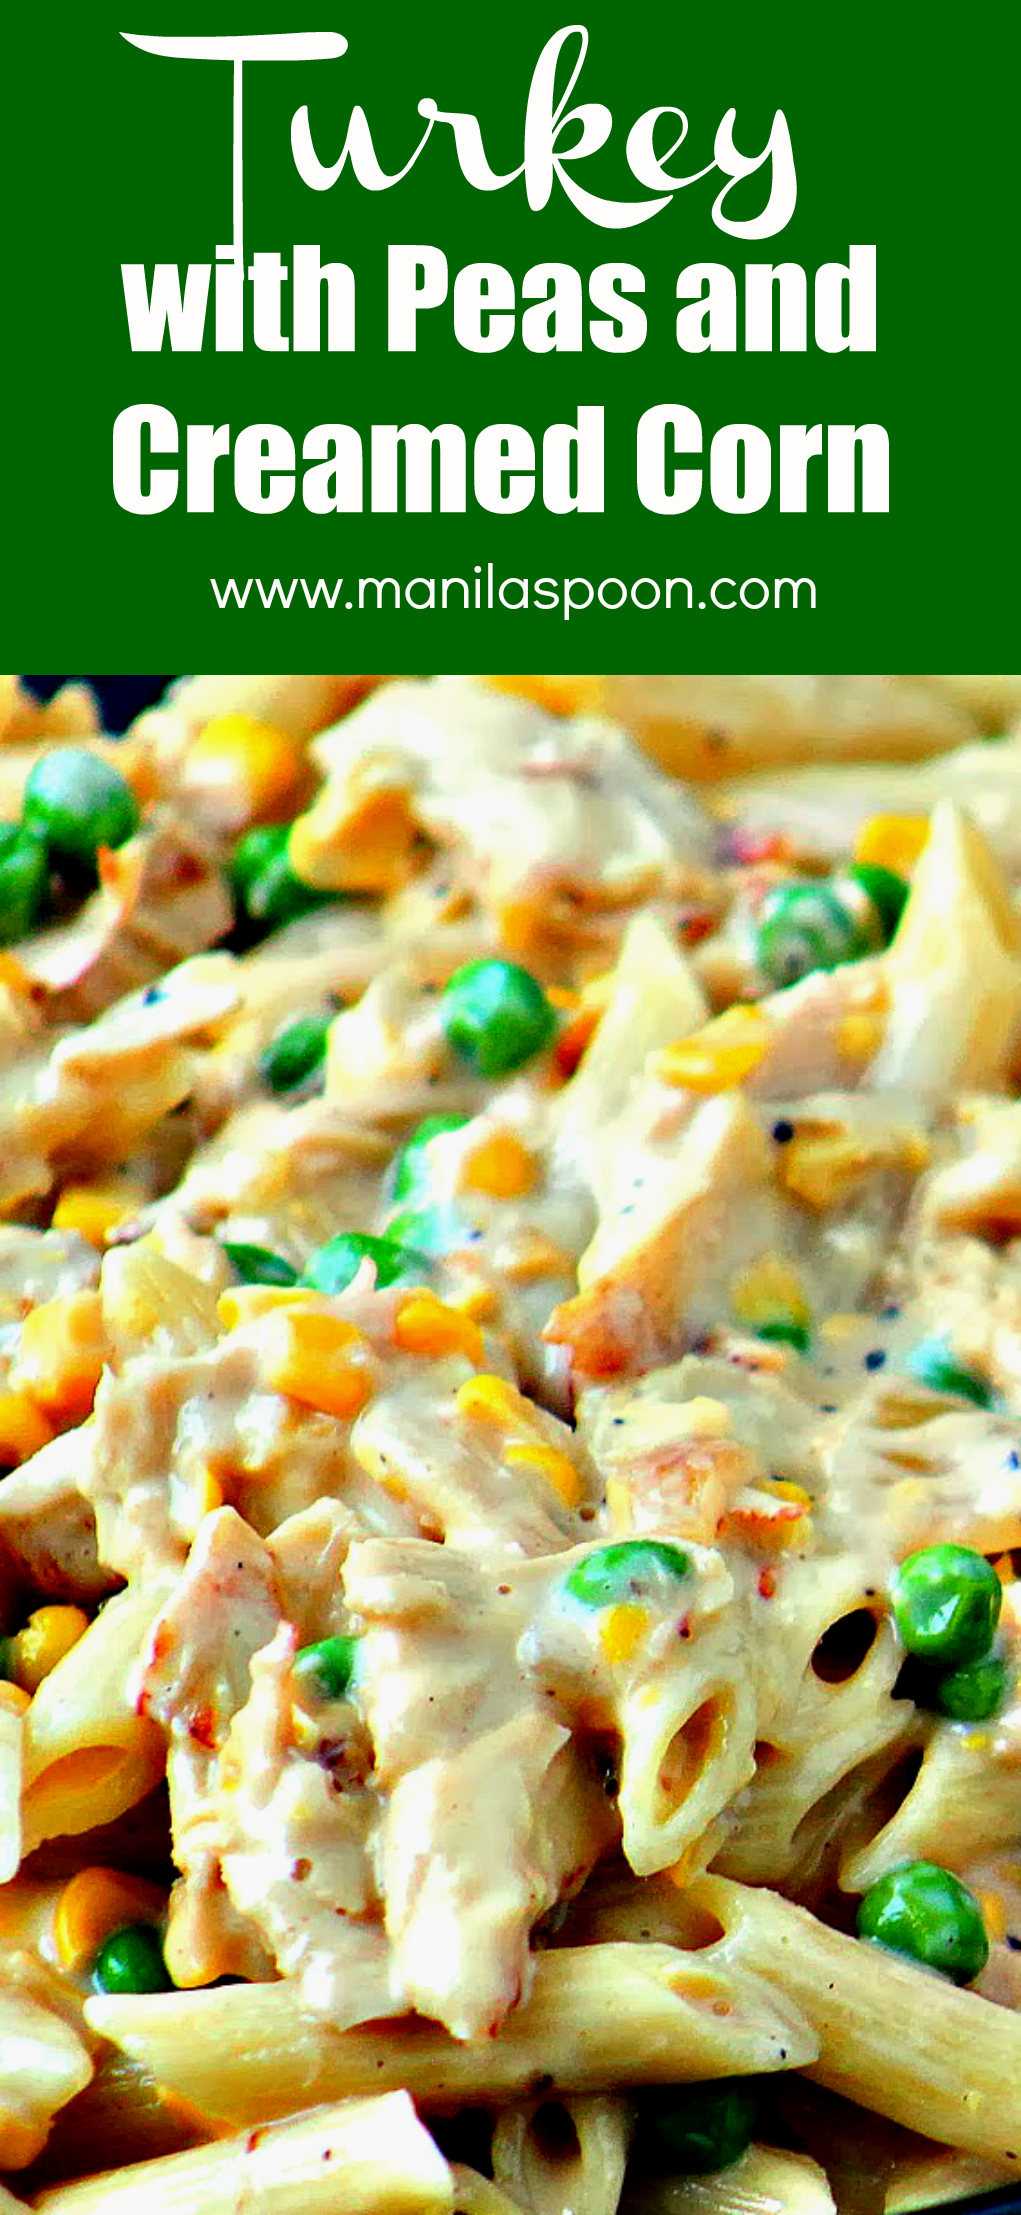 Creamed corn and peas add flavor and pop of color to this easy, simple and delicious pasta dish that's perfect for using your left-over chicken and turkey.